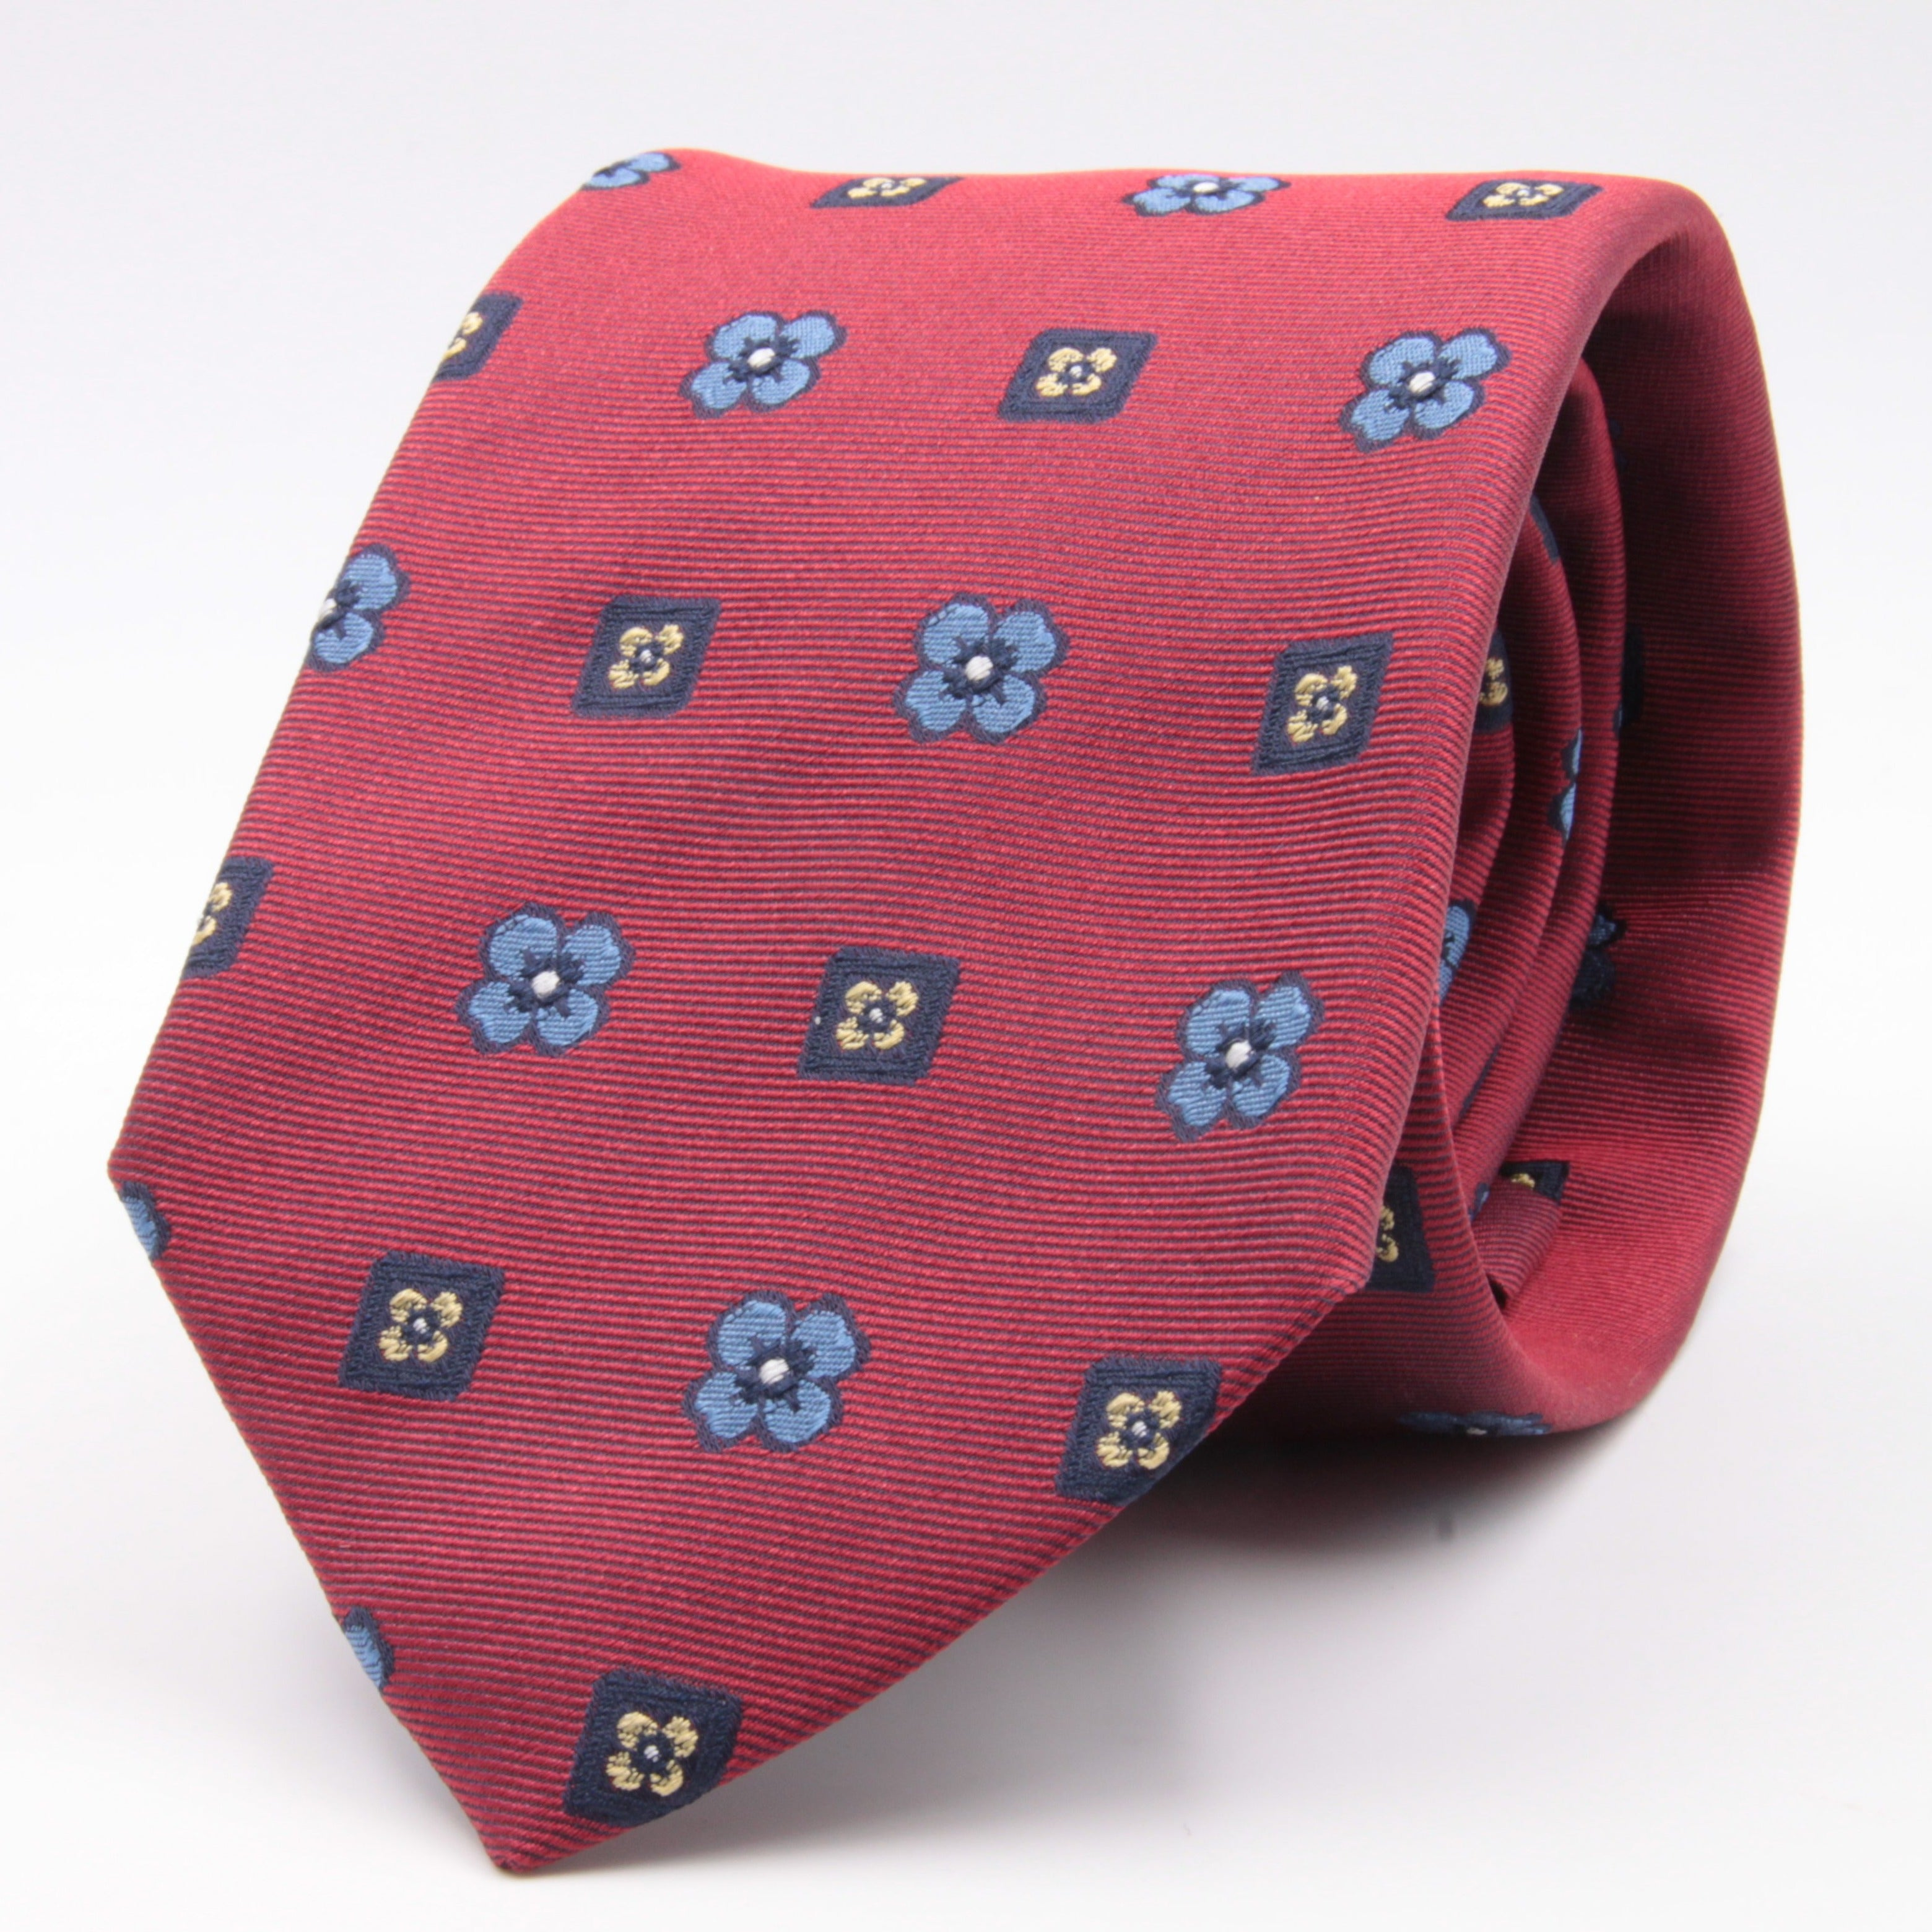 Cruciani & Bella 100% Silk Jacquard  Reds, Blue, Yellow and Light Blue Flowers Tie Handmade in Italy 8 cm x 150 cm #4477